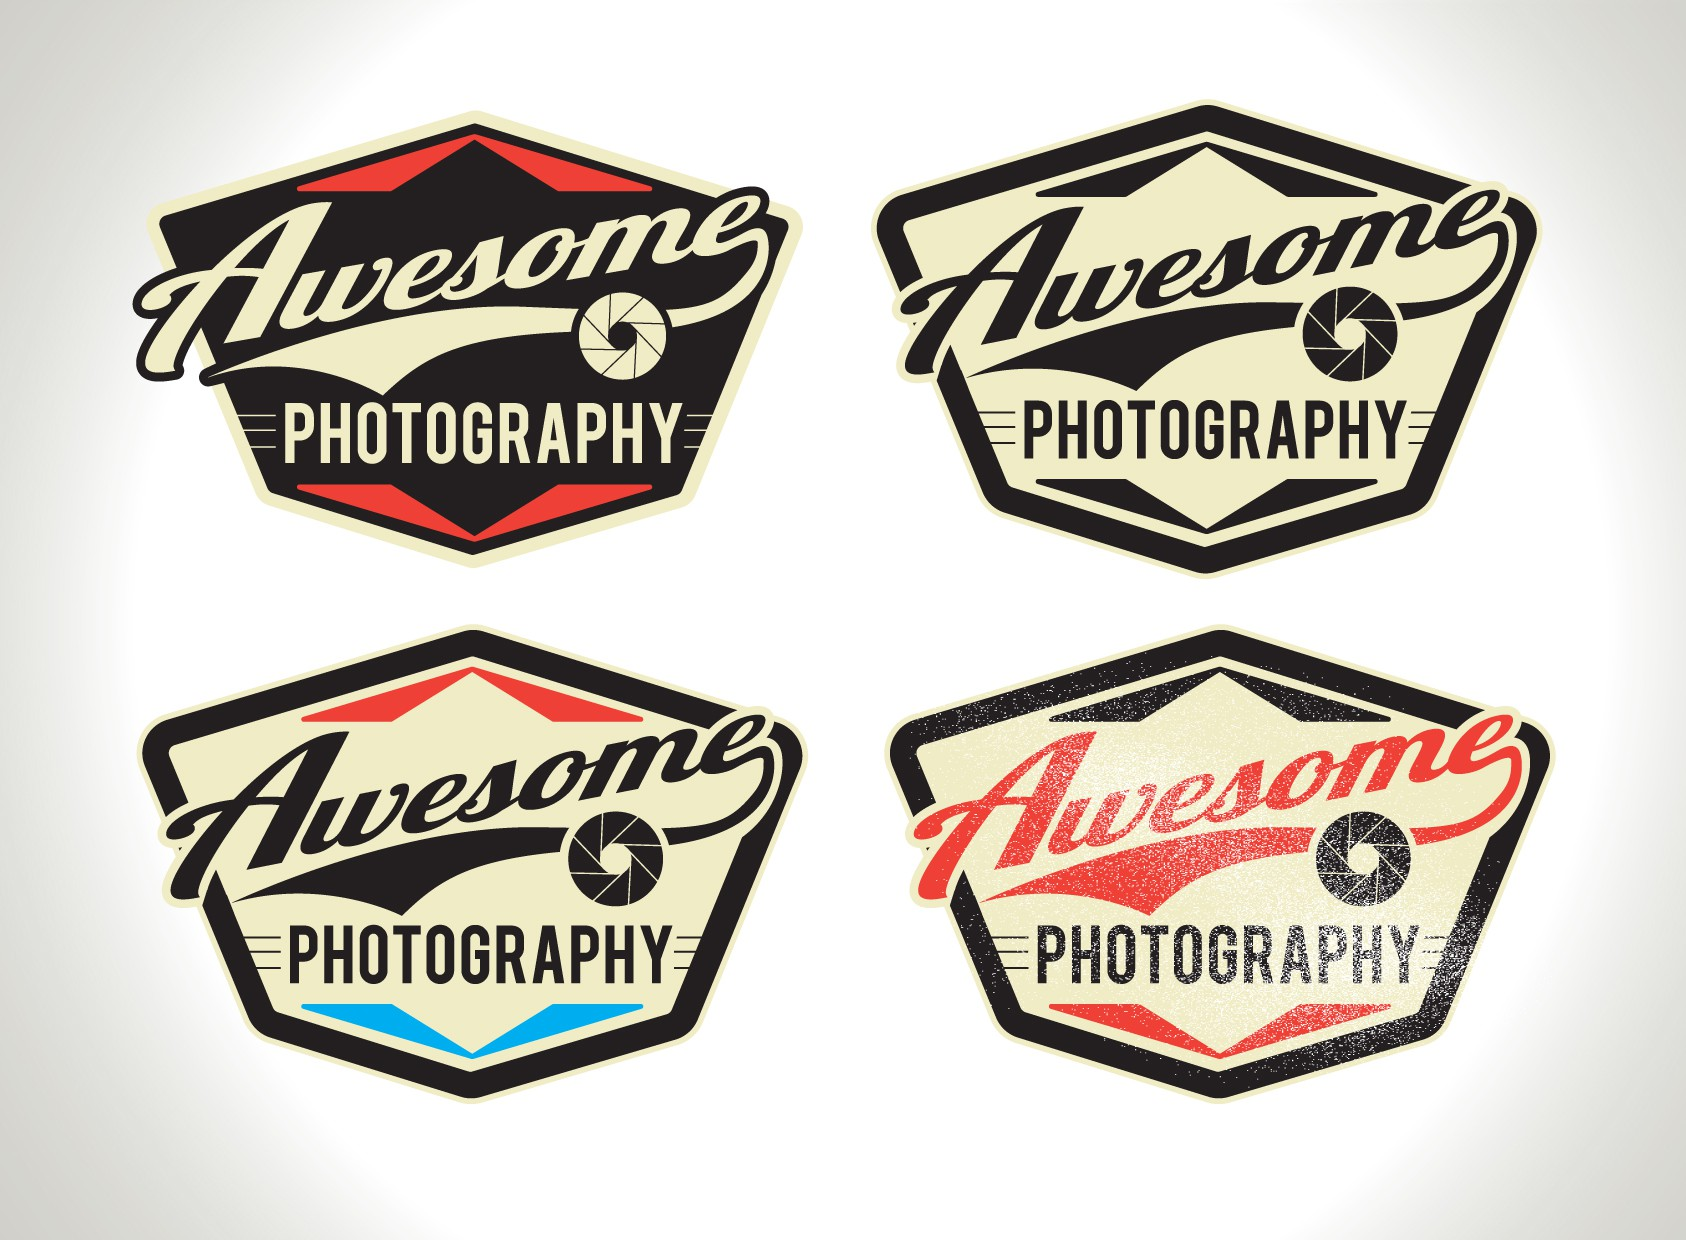 New logo wanted for Awesome Photography